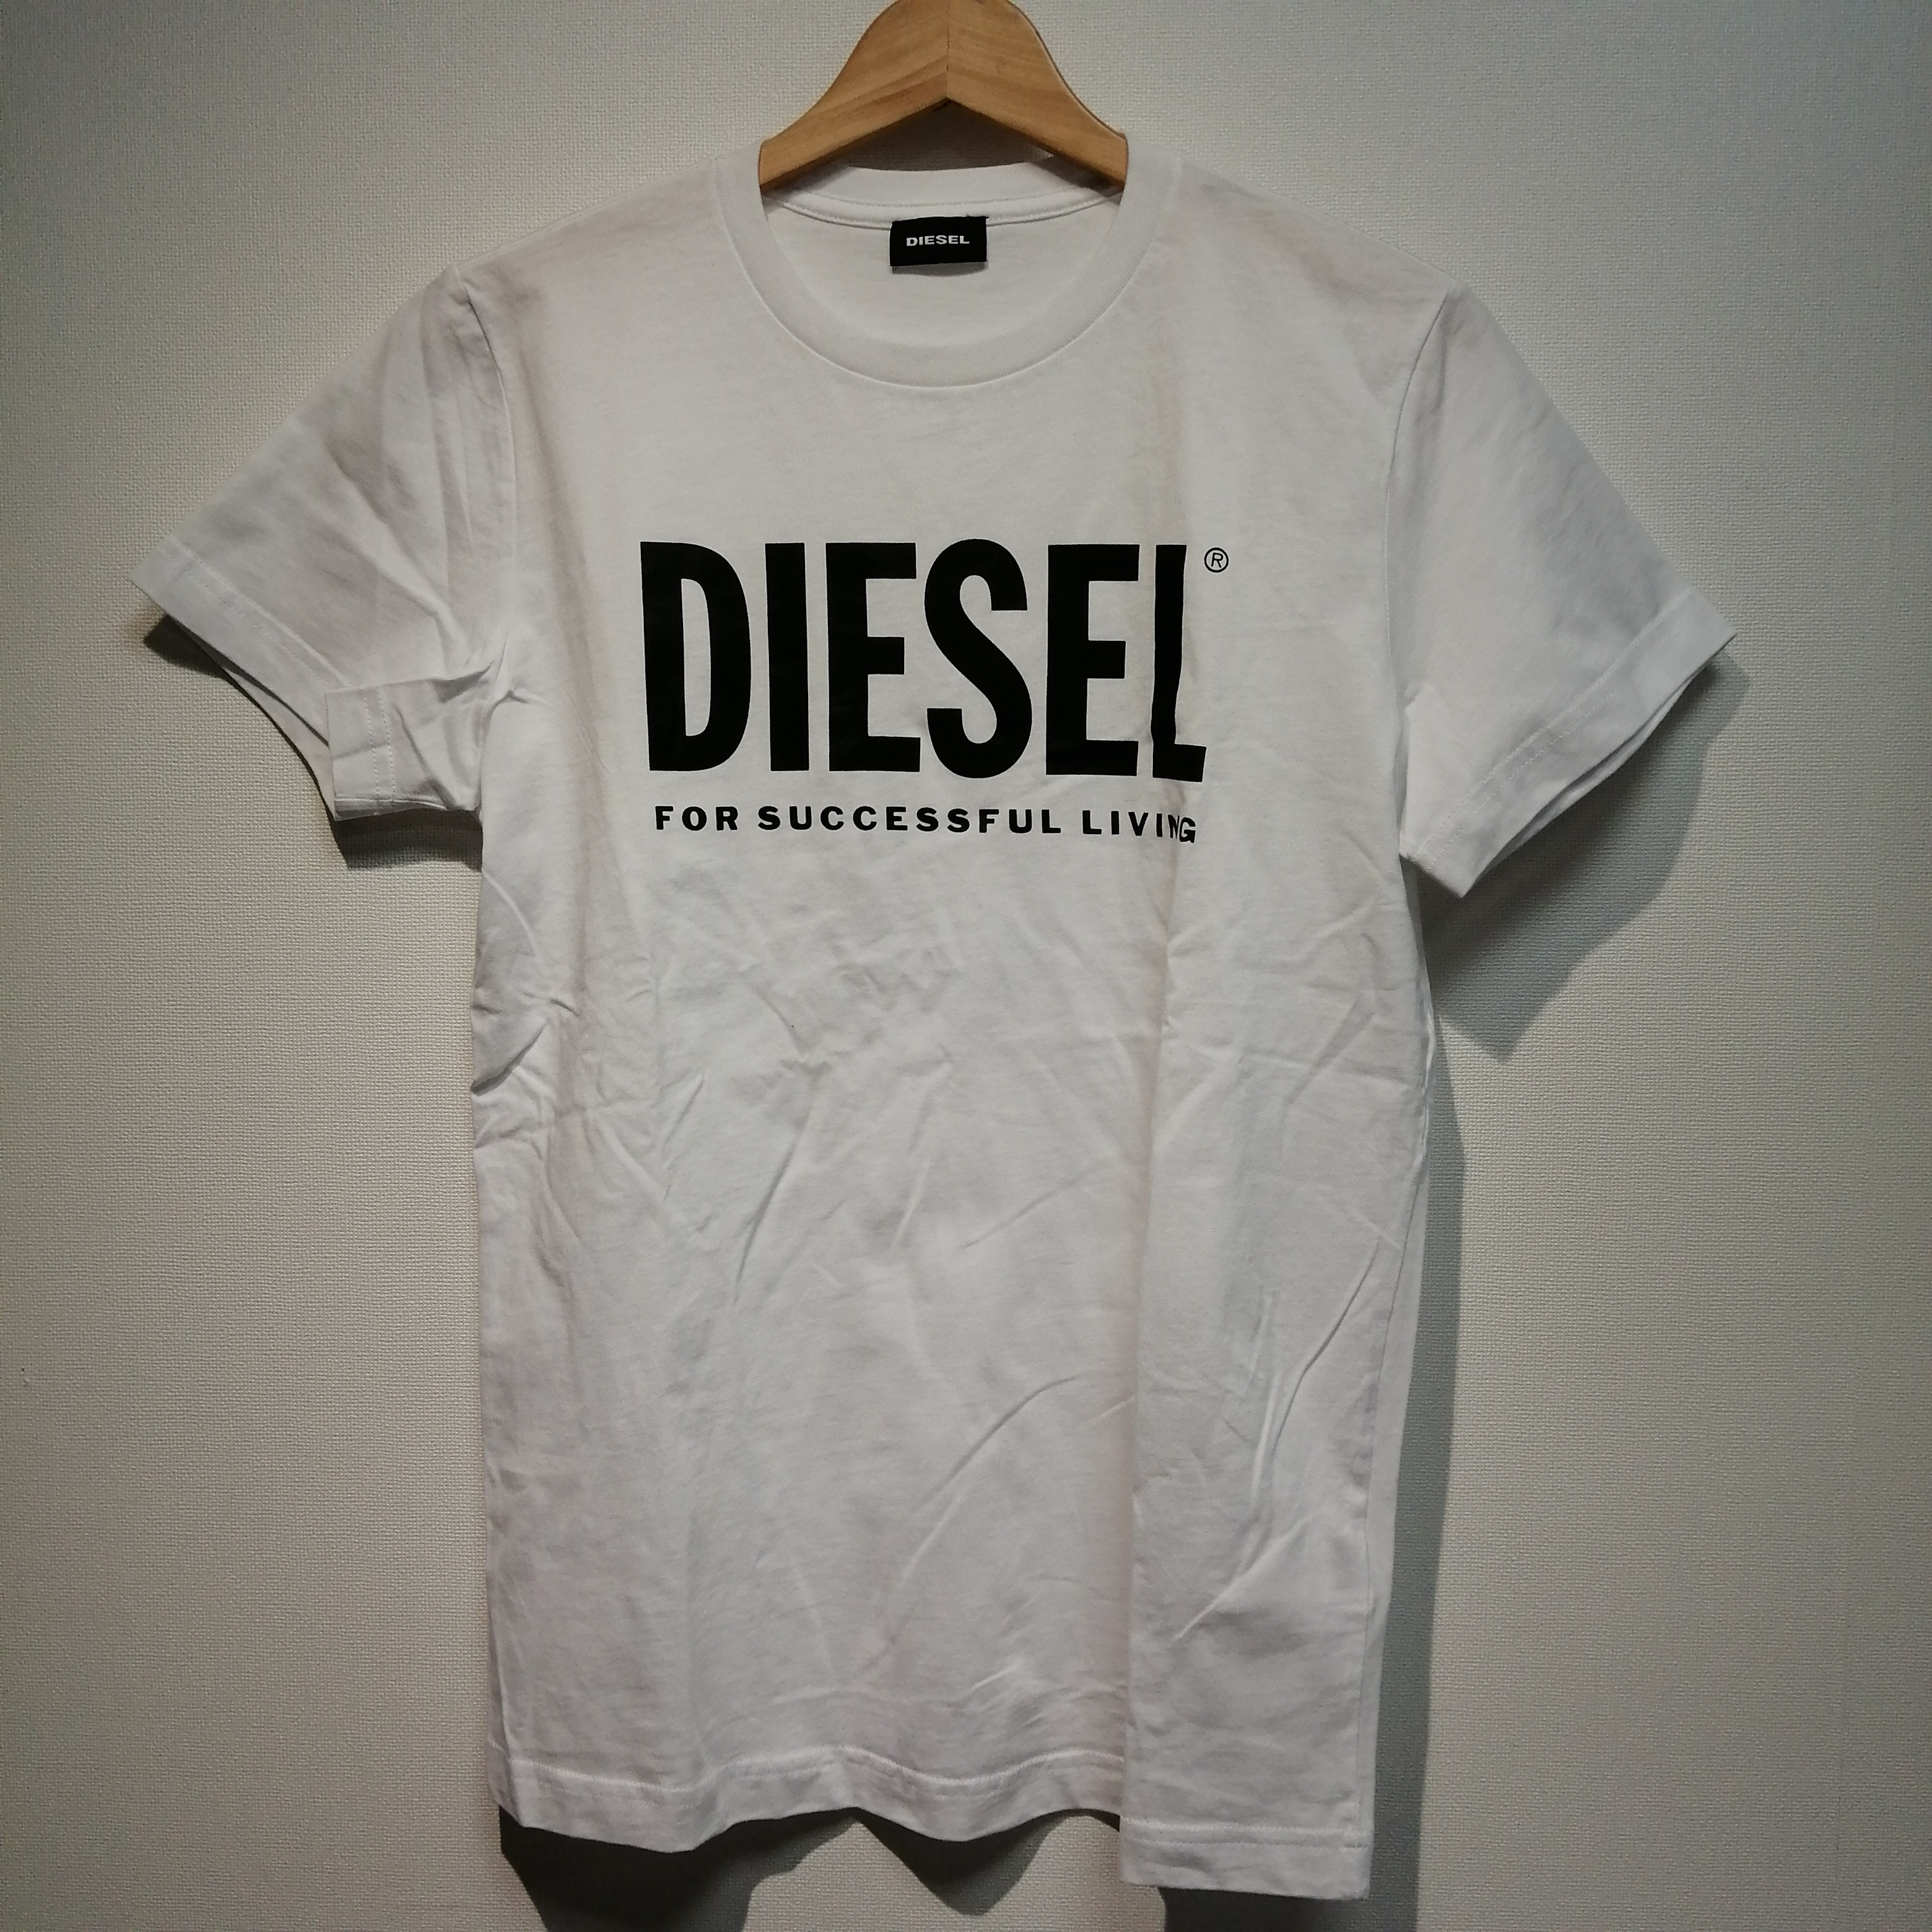 Tシャツ[FOR SUCCESSFUL LIVING]|DIESEL